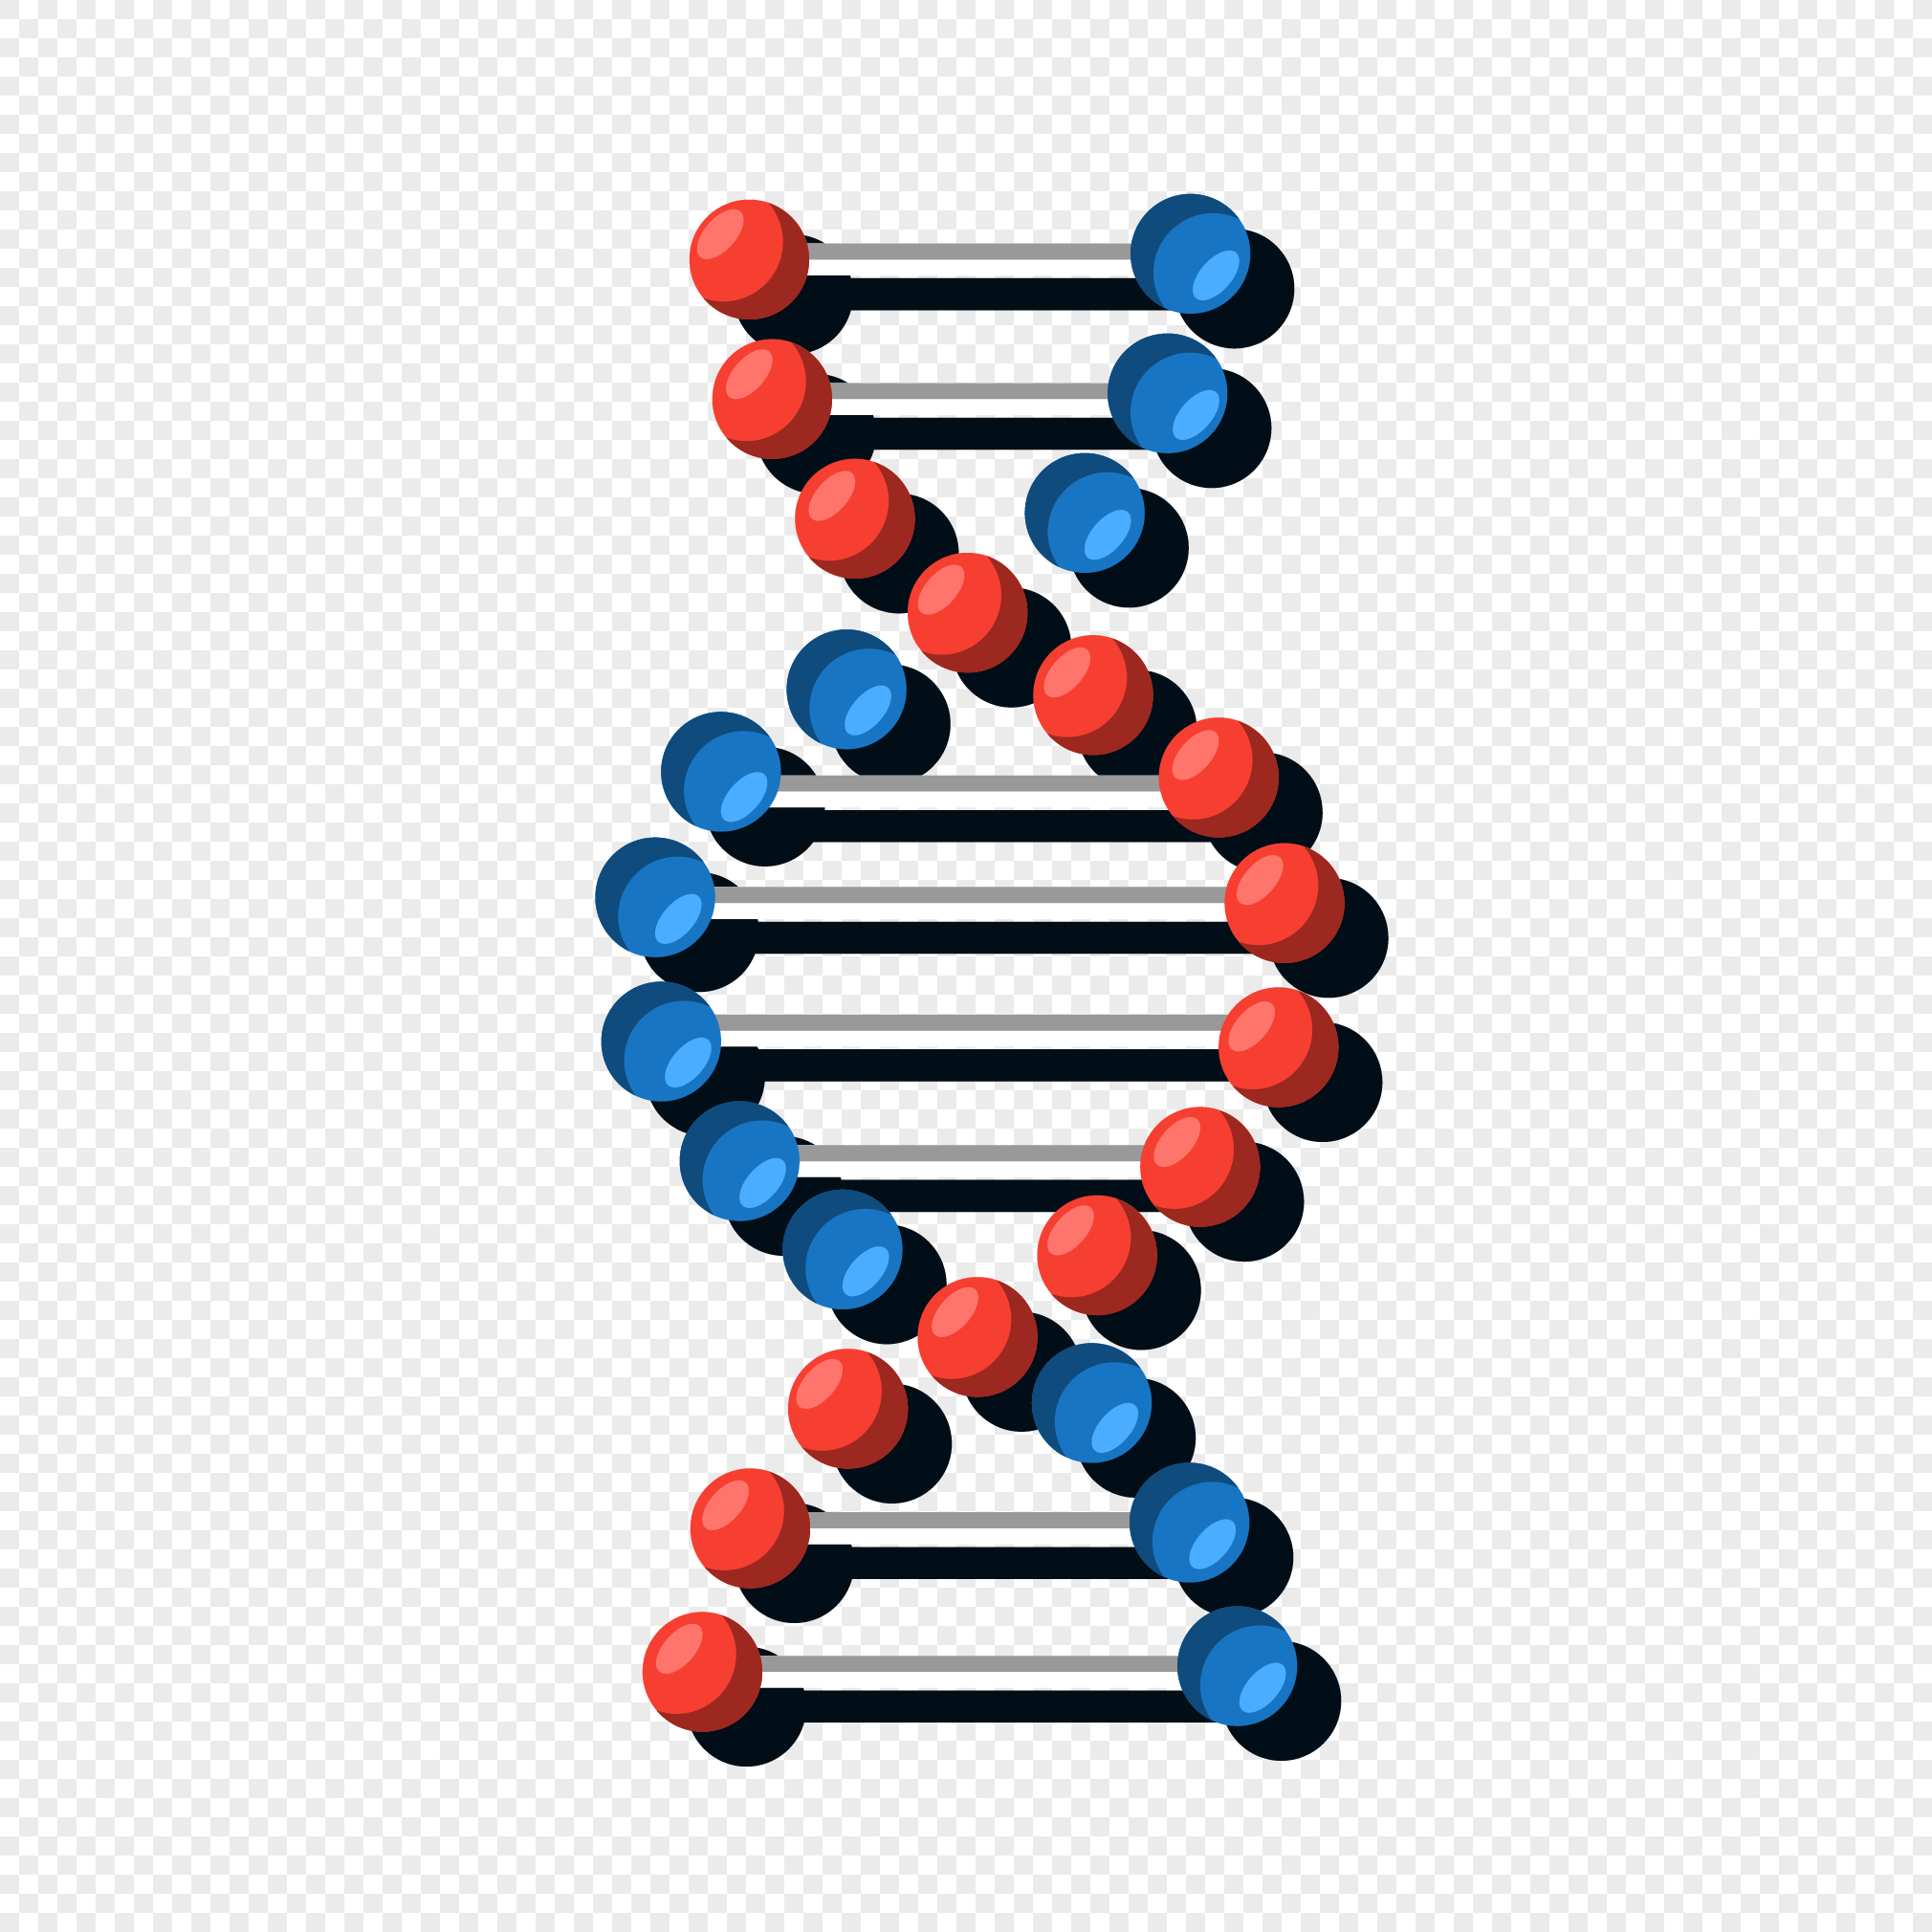 2020x2020 Dna Color Molecular Vector Material Png Image Picture Free